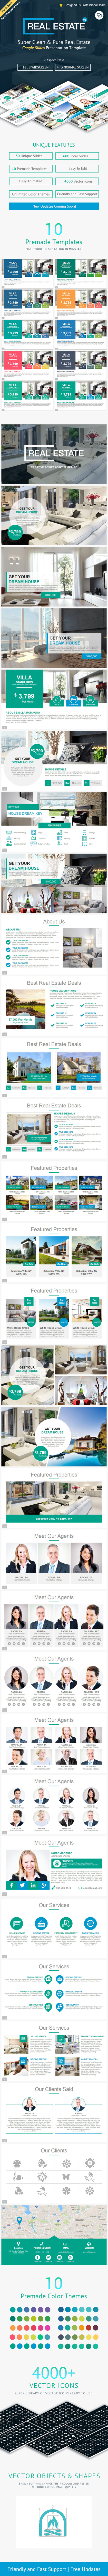 Creative Real Estate Google Slides Presentation Template - Google Slides Presentation Templates